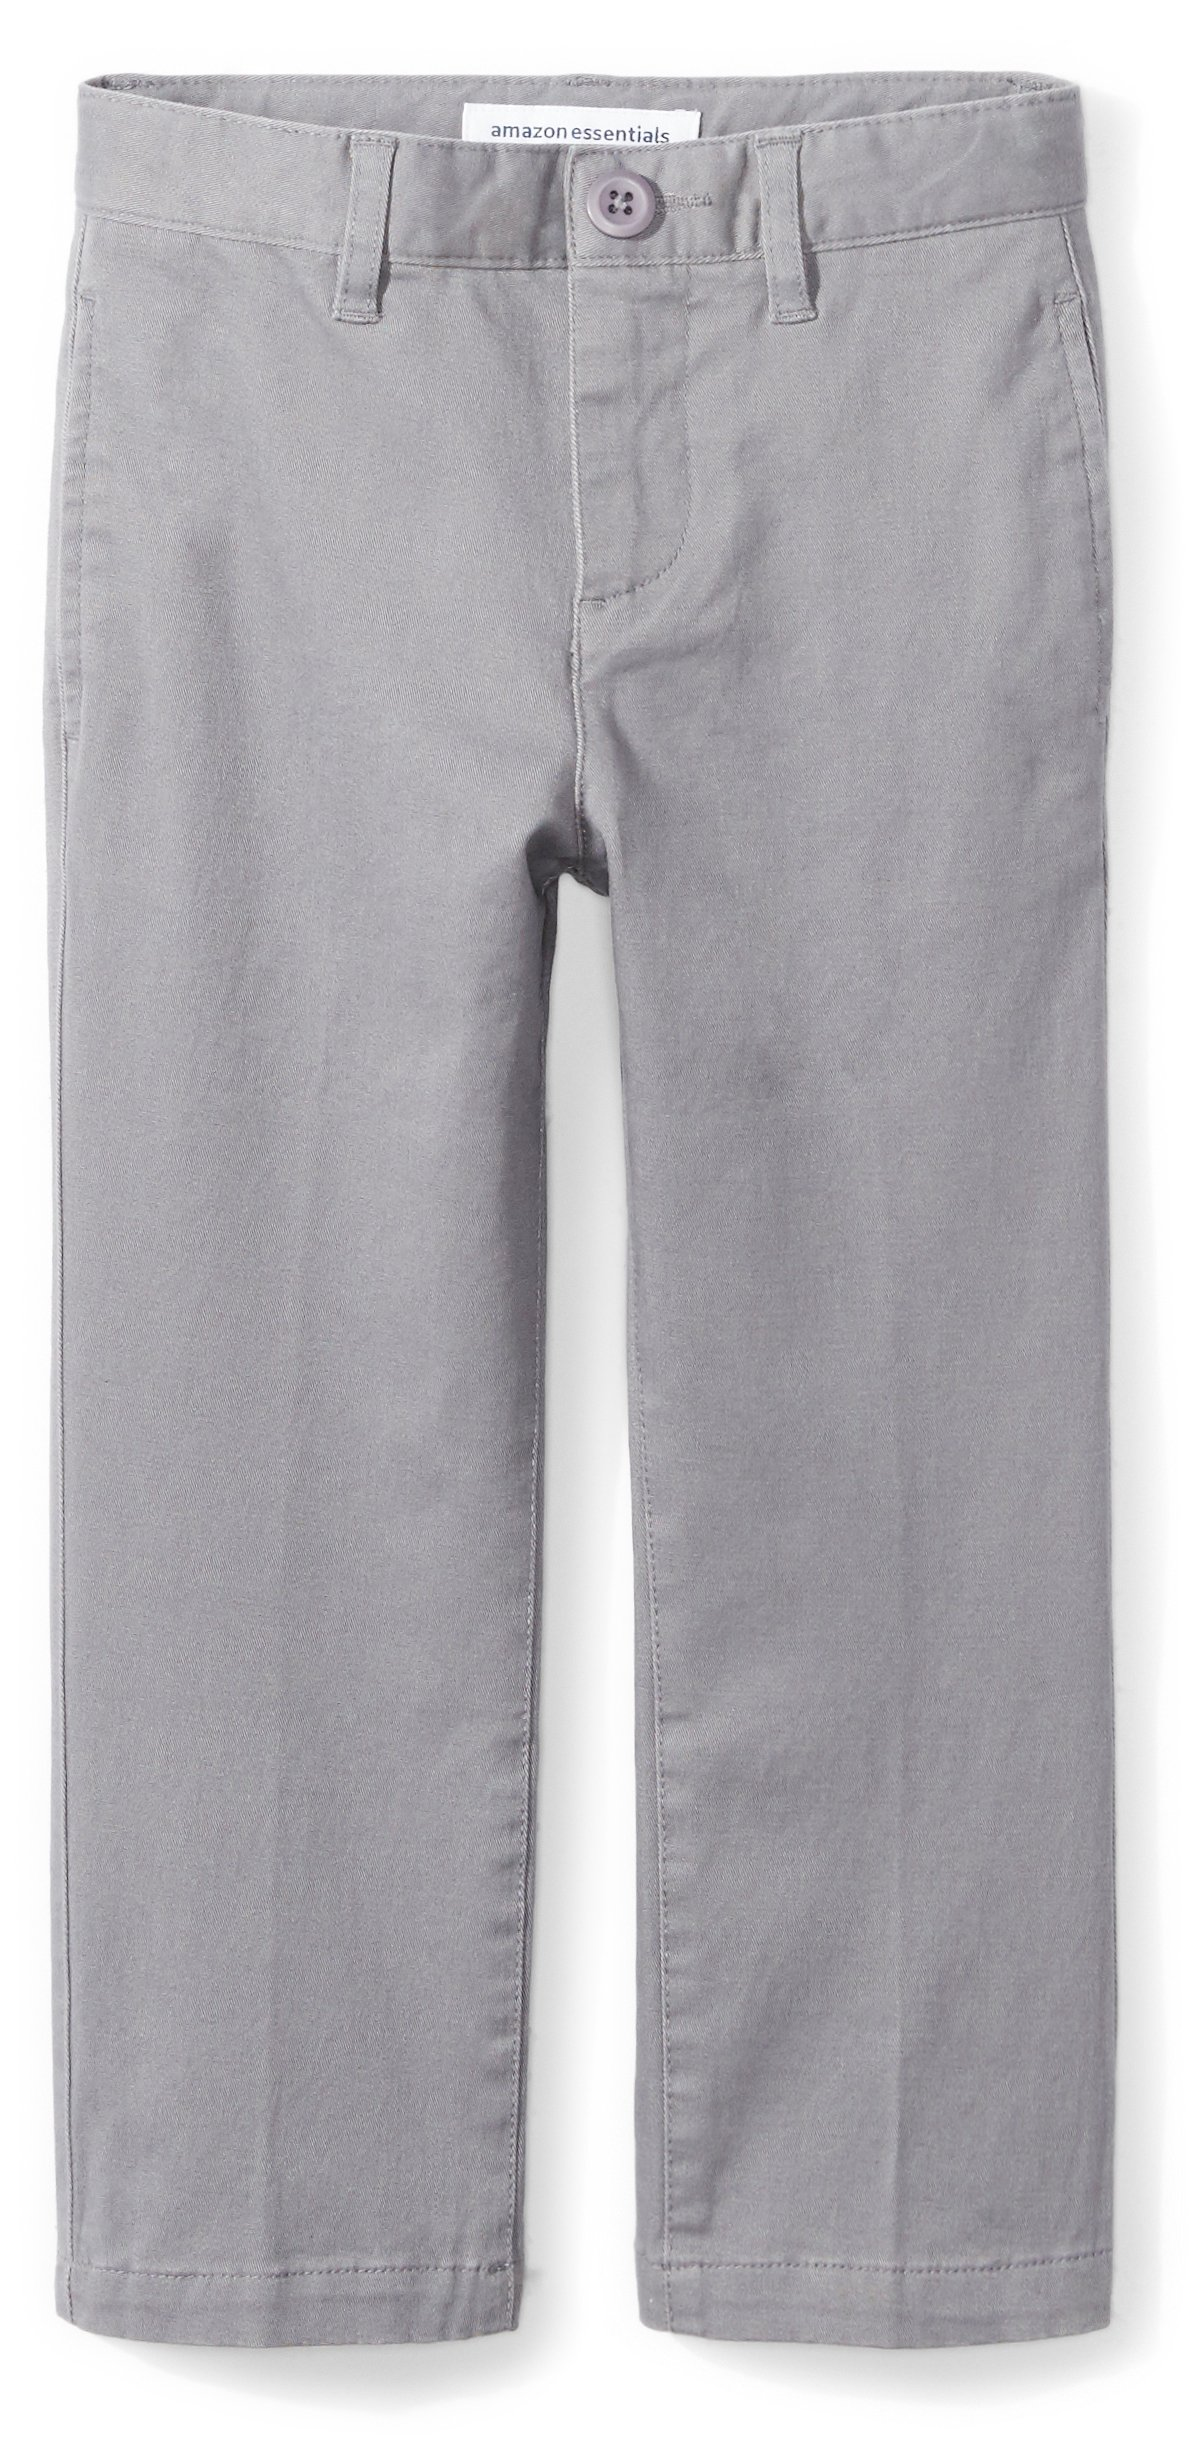 Amazon Essentials Boys' Straight Leg Flat Front Uniform Chino Pant, Gray, 2T